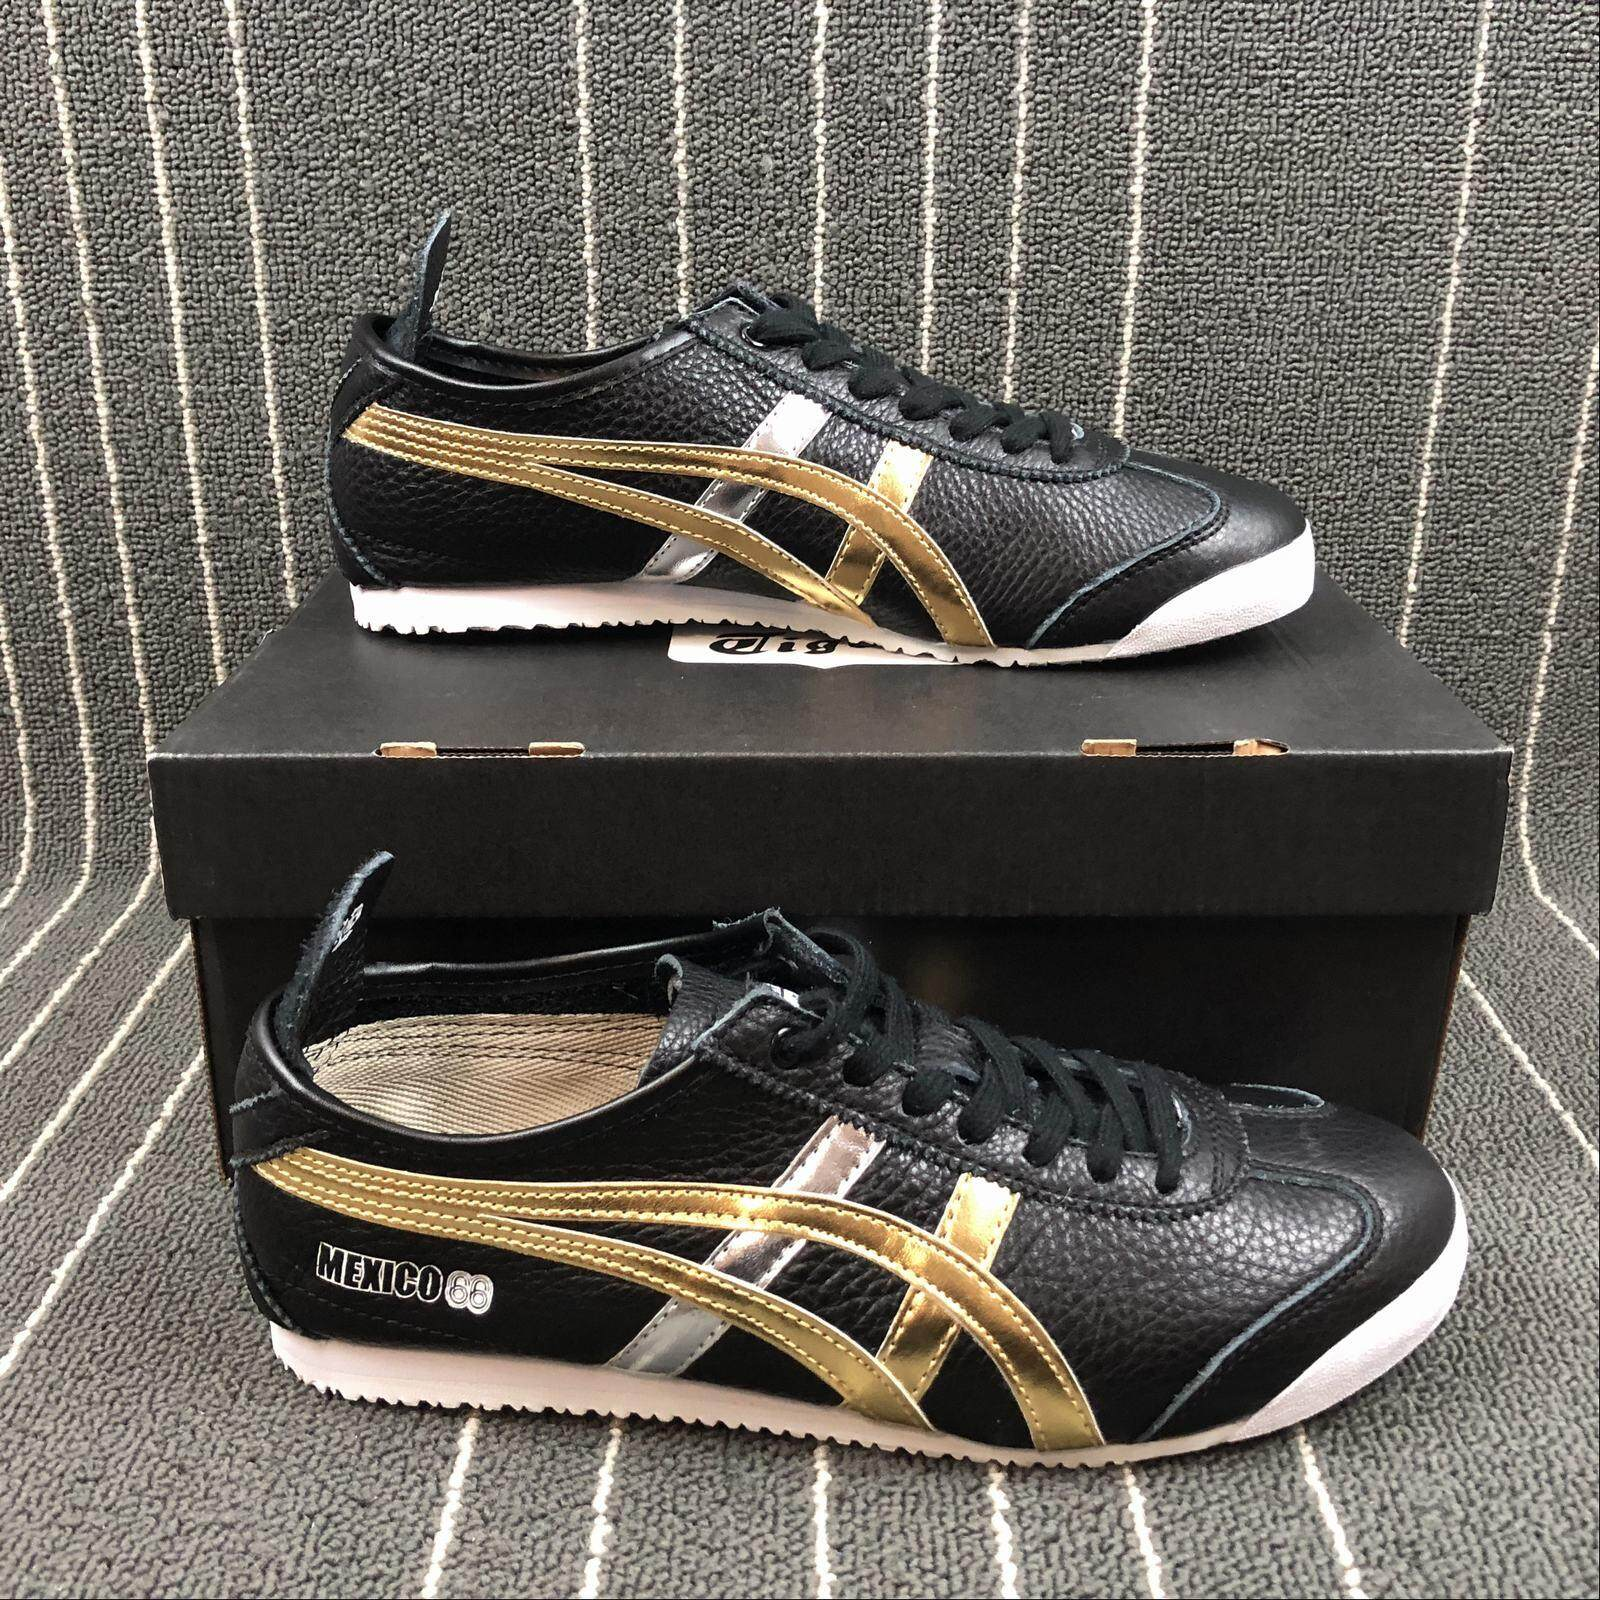 22377a32a77 Asics Onitsuka tiger MEXICO 66 D5V2L-9094 Men s Women s Sport Fashion  Running Shoes Sneakers